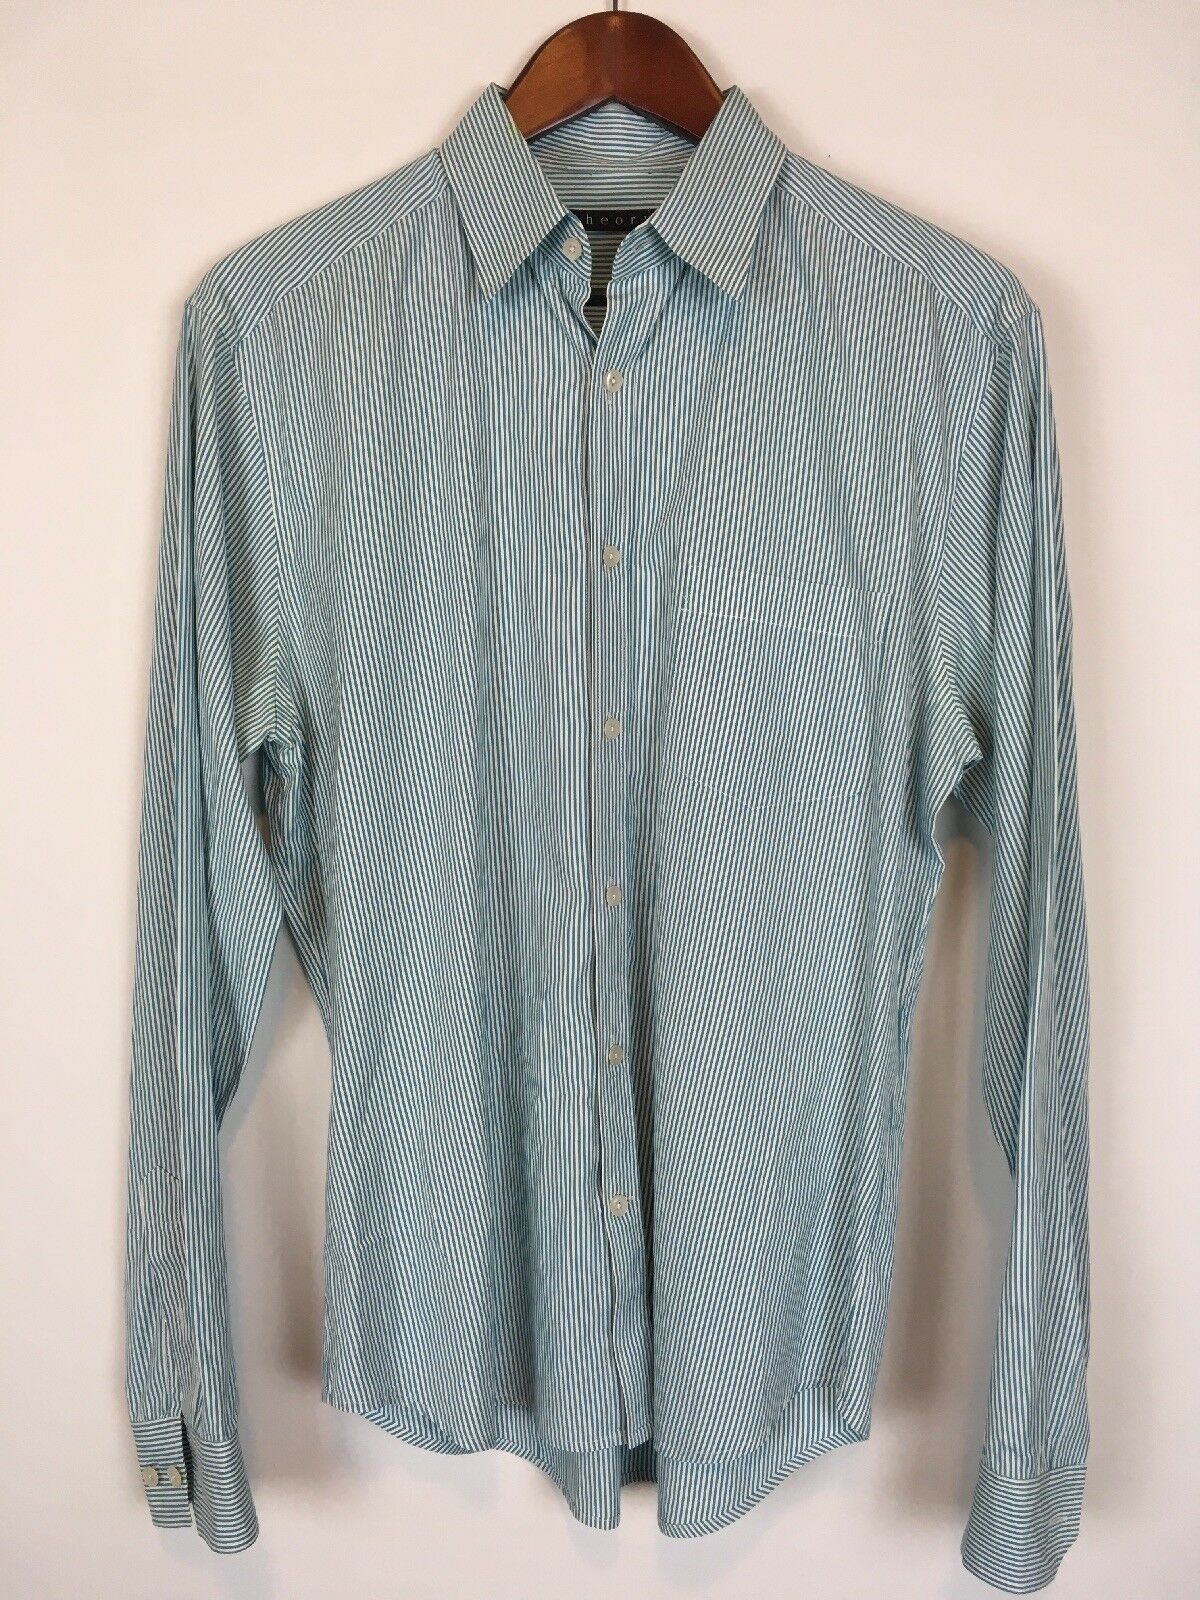 Theory Womens Long Sleeve Button Up bluee Pinstripe Dress Shirts Size M A1427